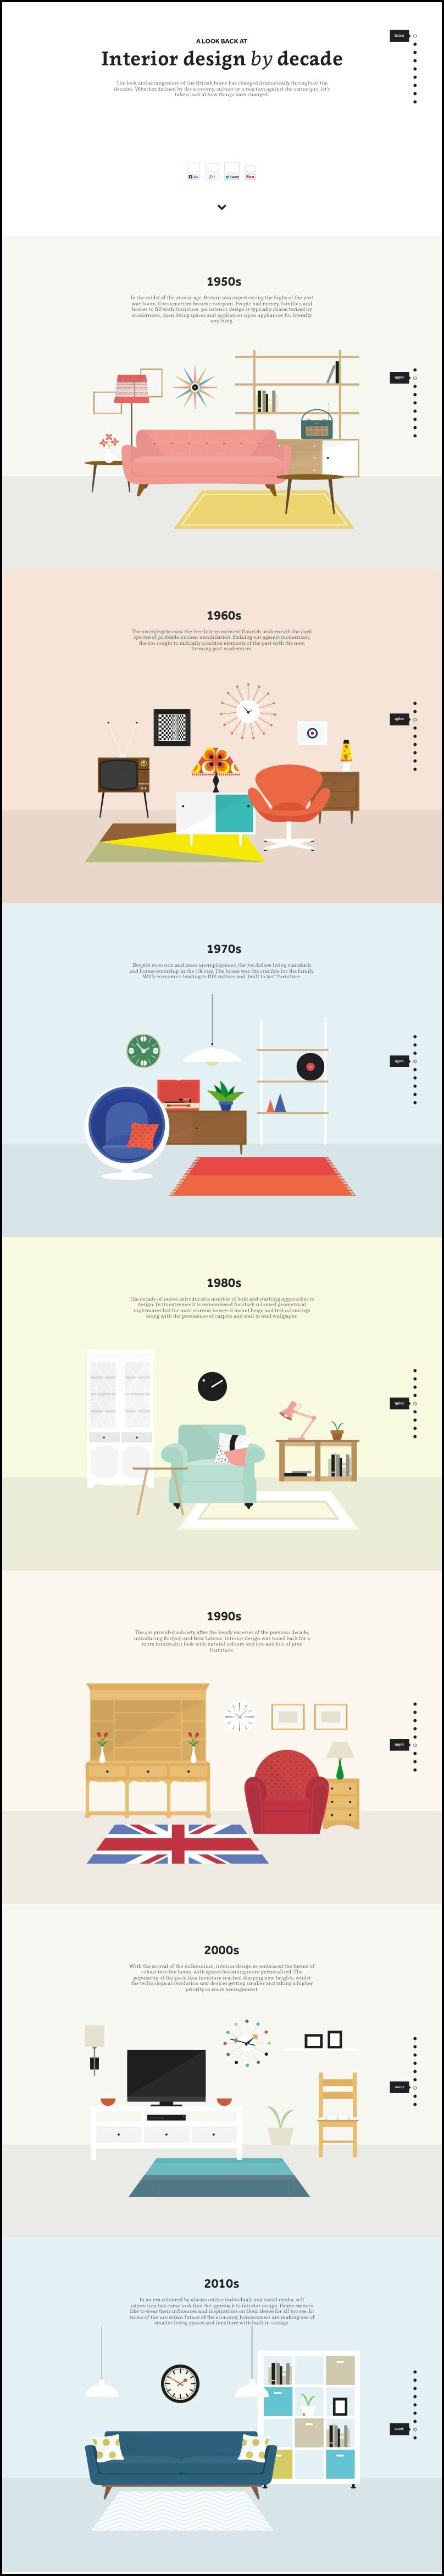 Interior Design by Decade | Tipsaholic.com #home #design #decor #interior #style #history